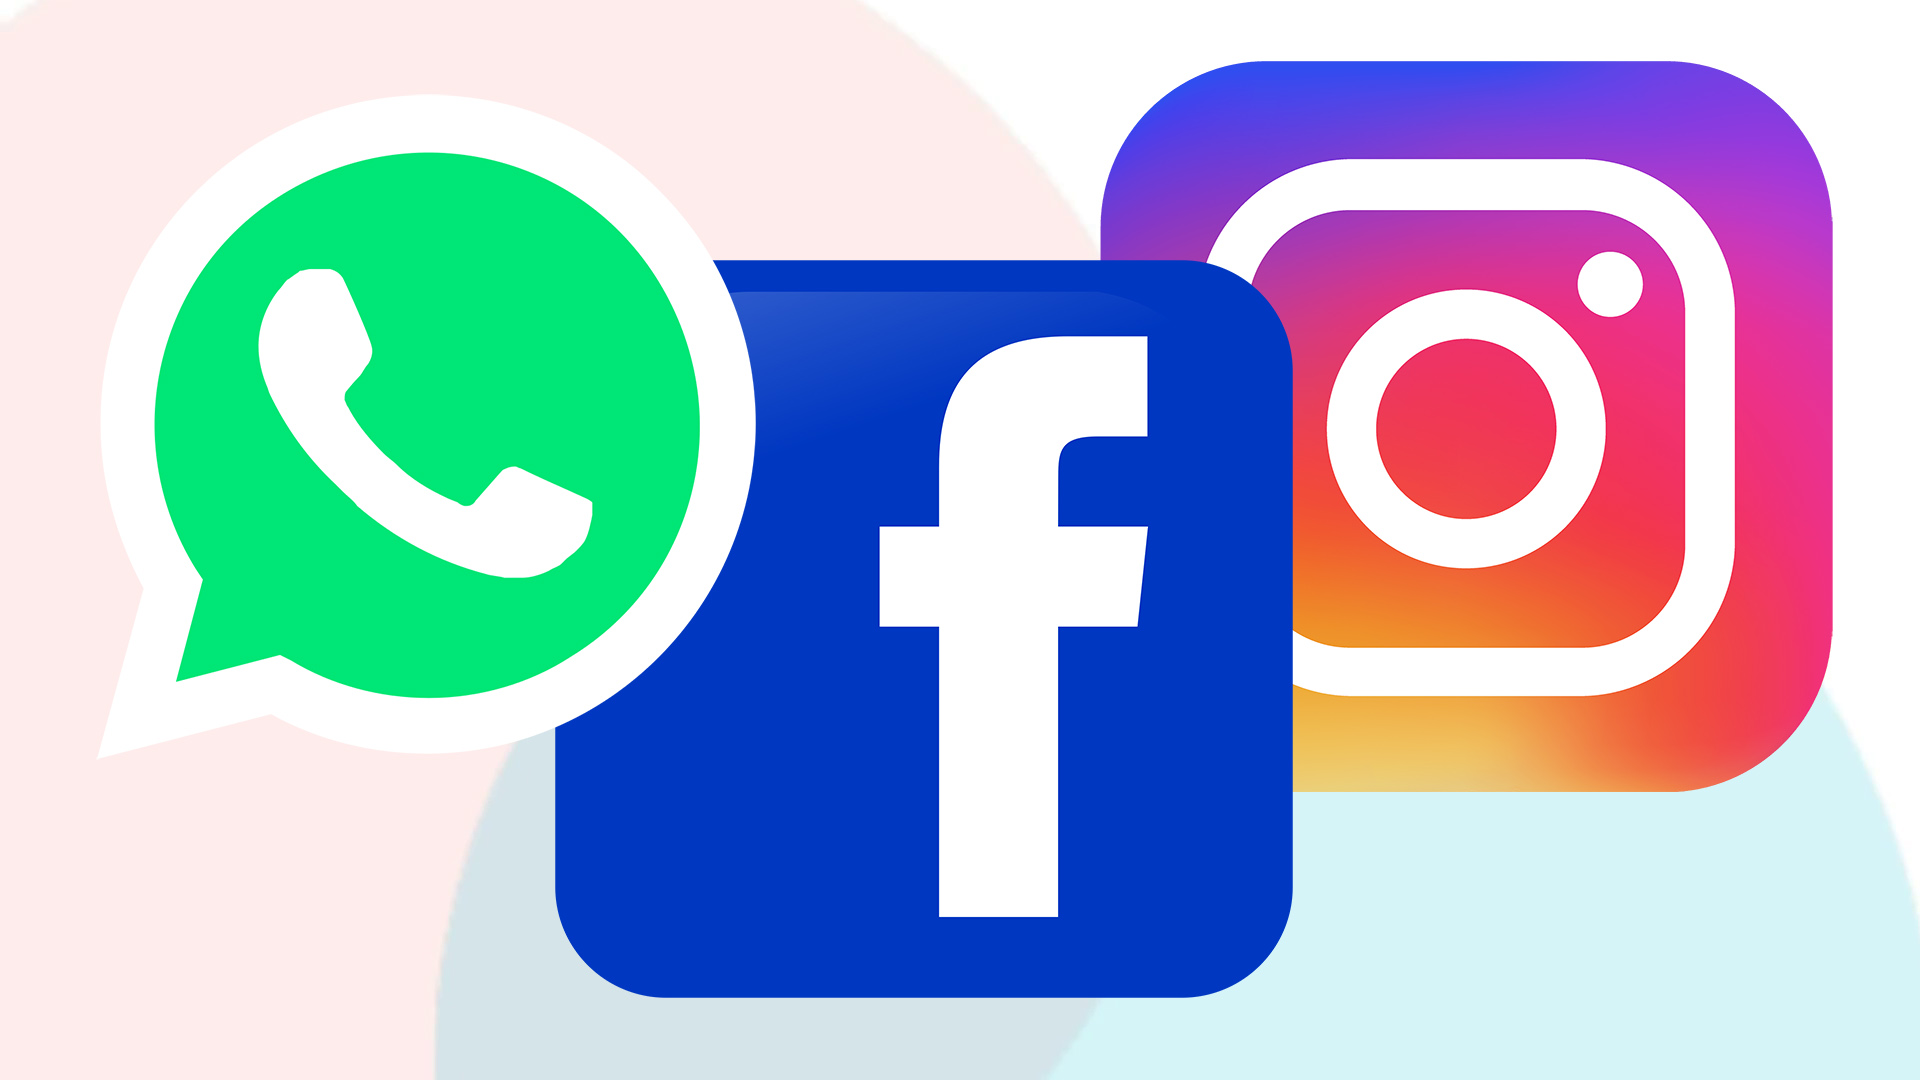 Reportan fallas de WhatsApp, Facebook e Instagram